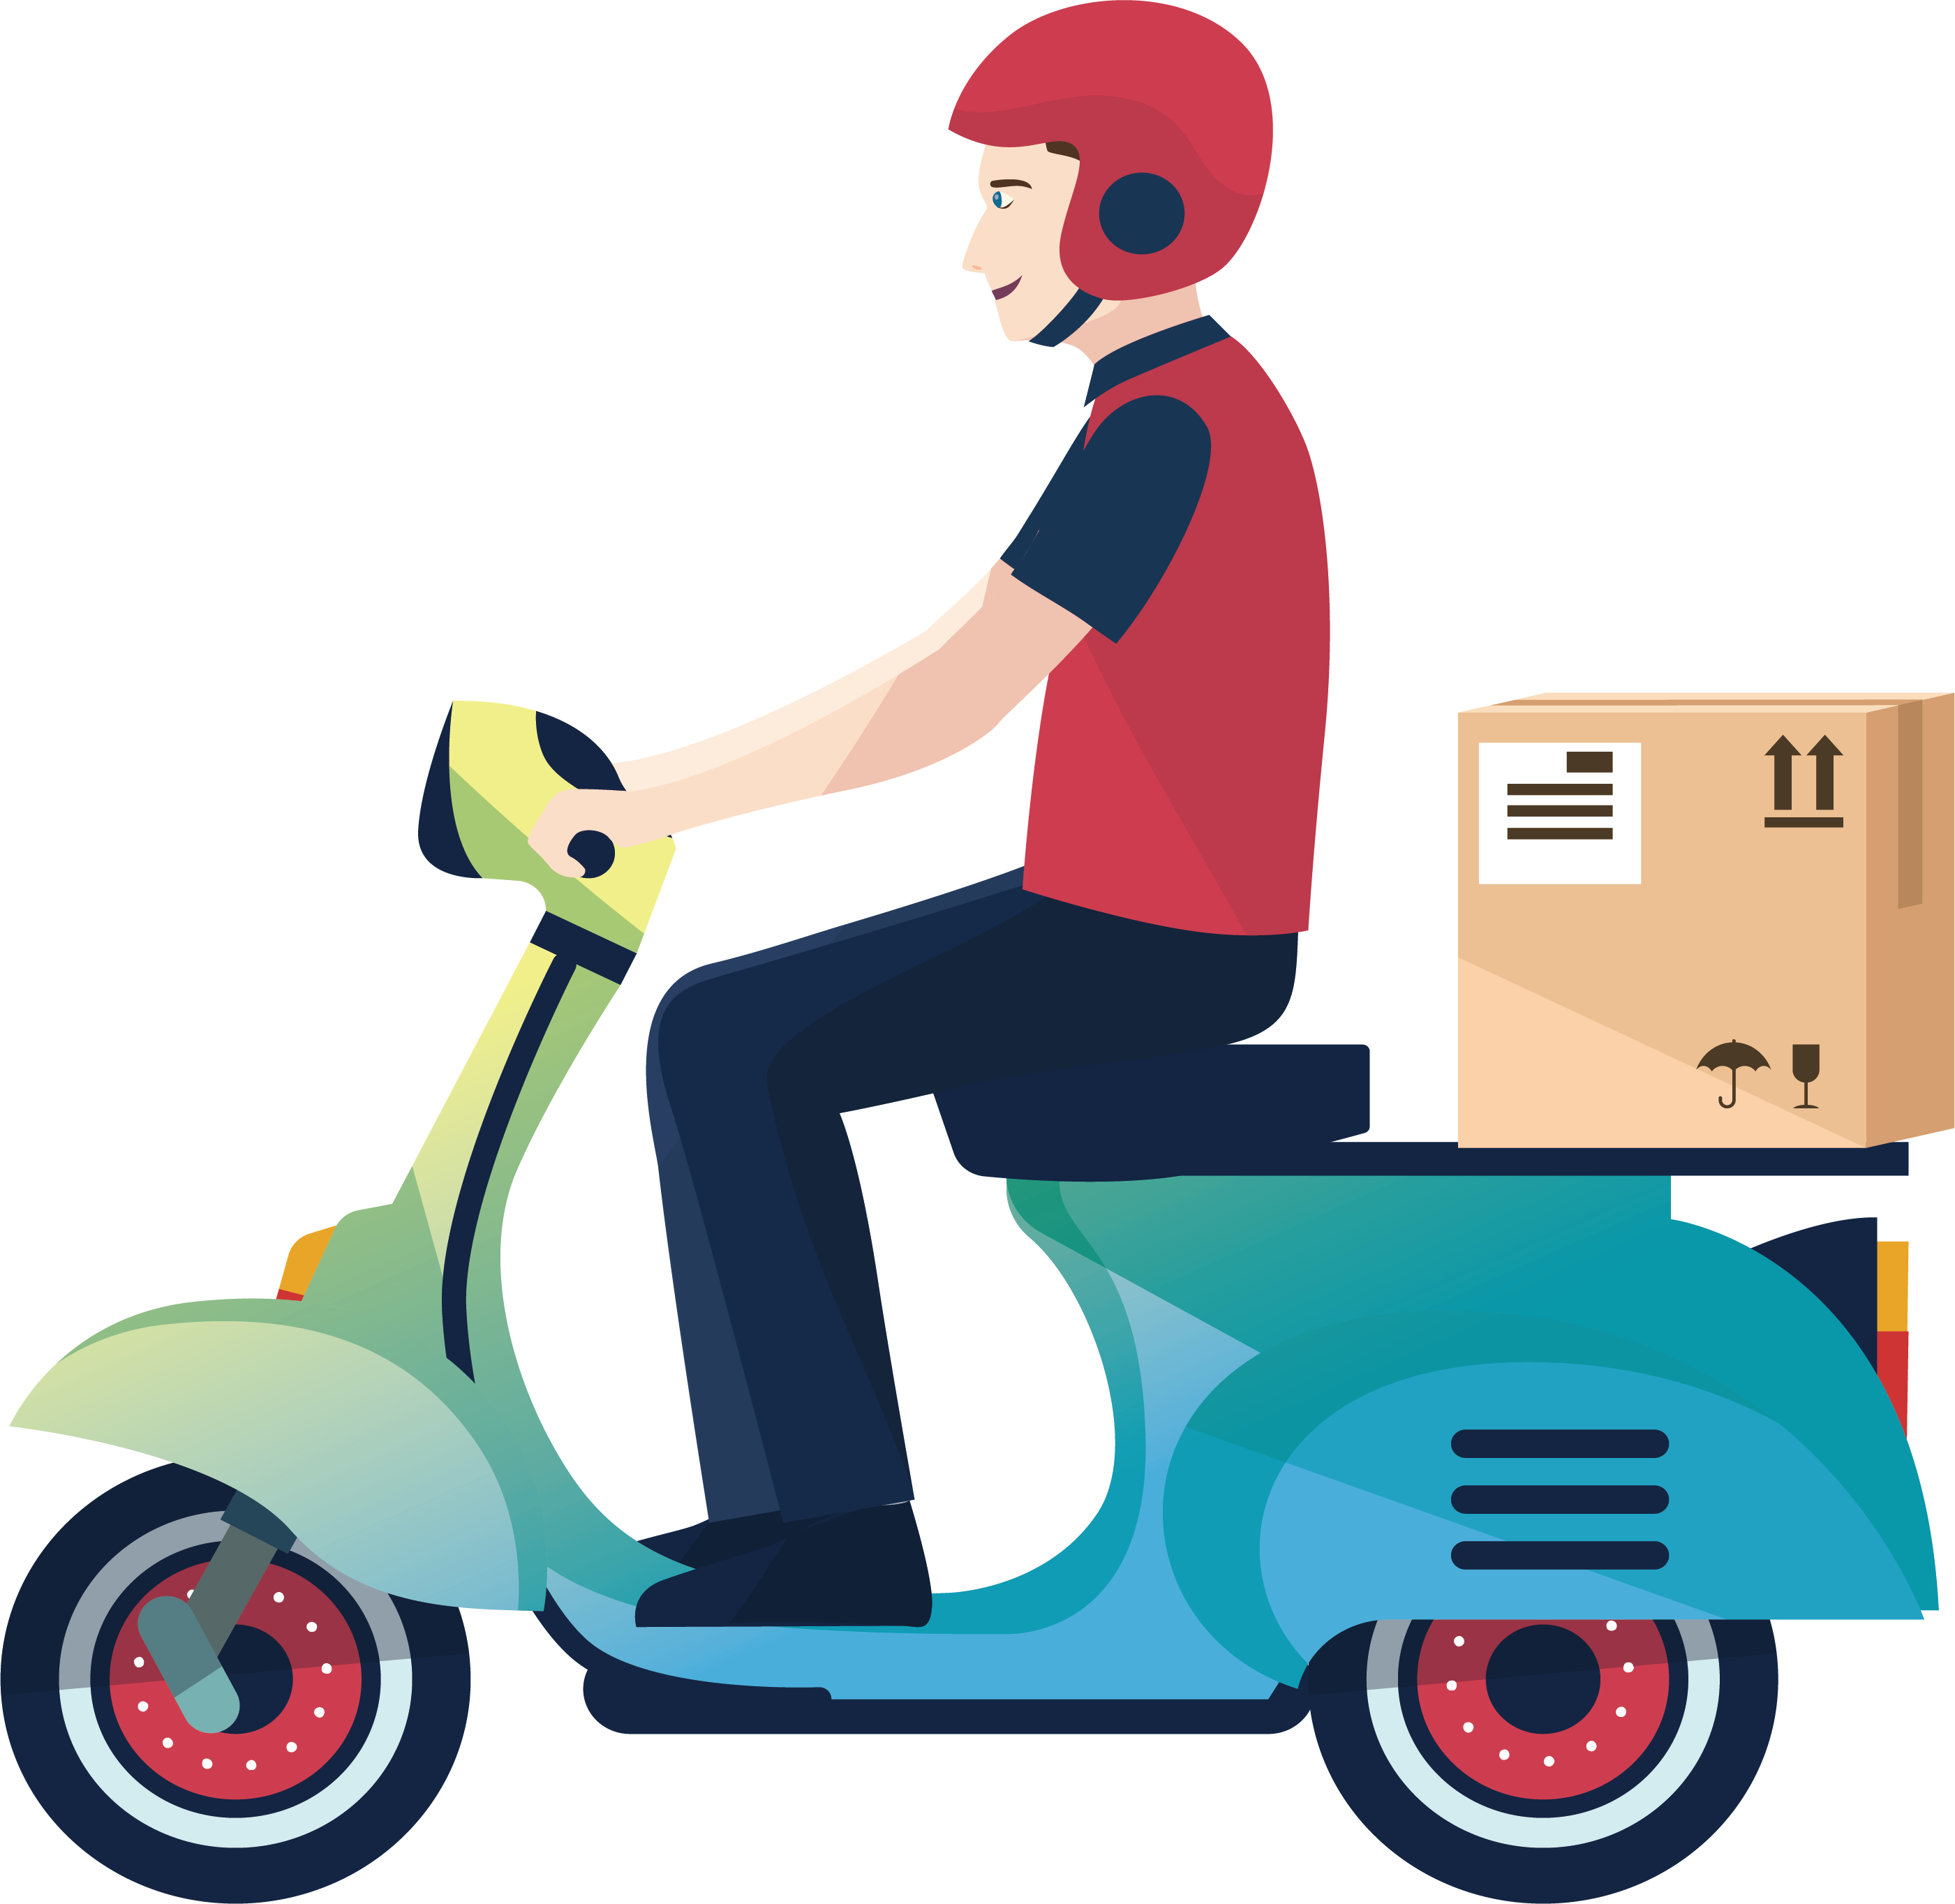 Scooter vector design. Delivery motorcycle courier logistics